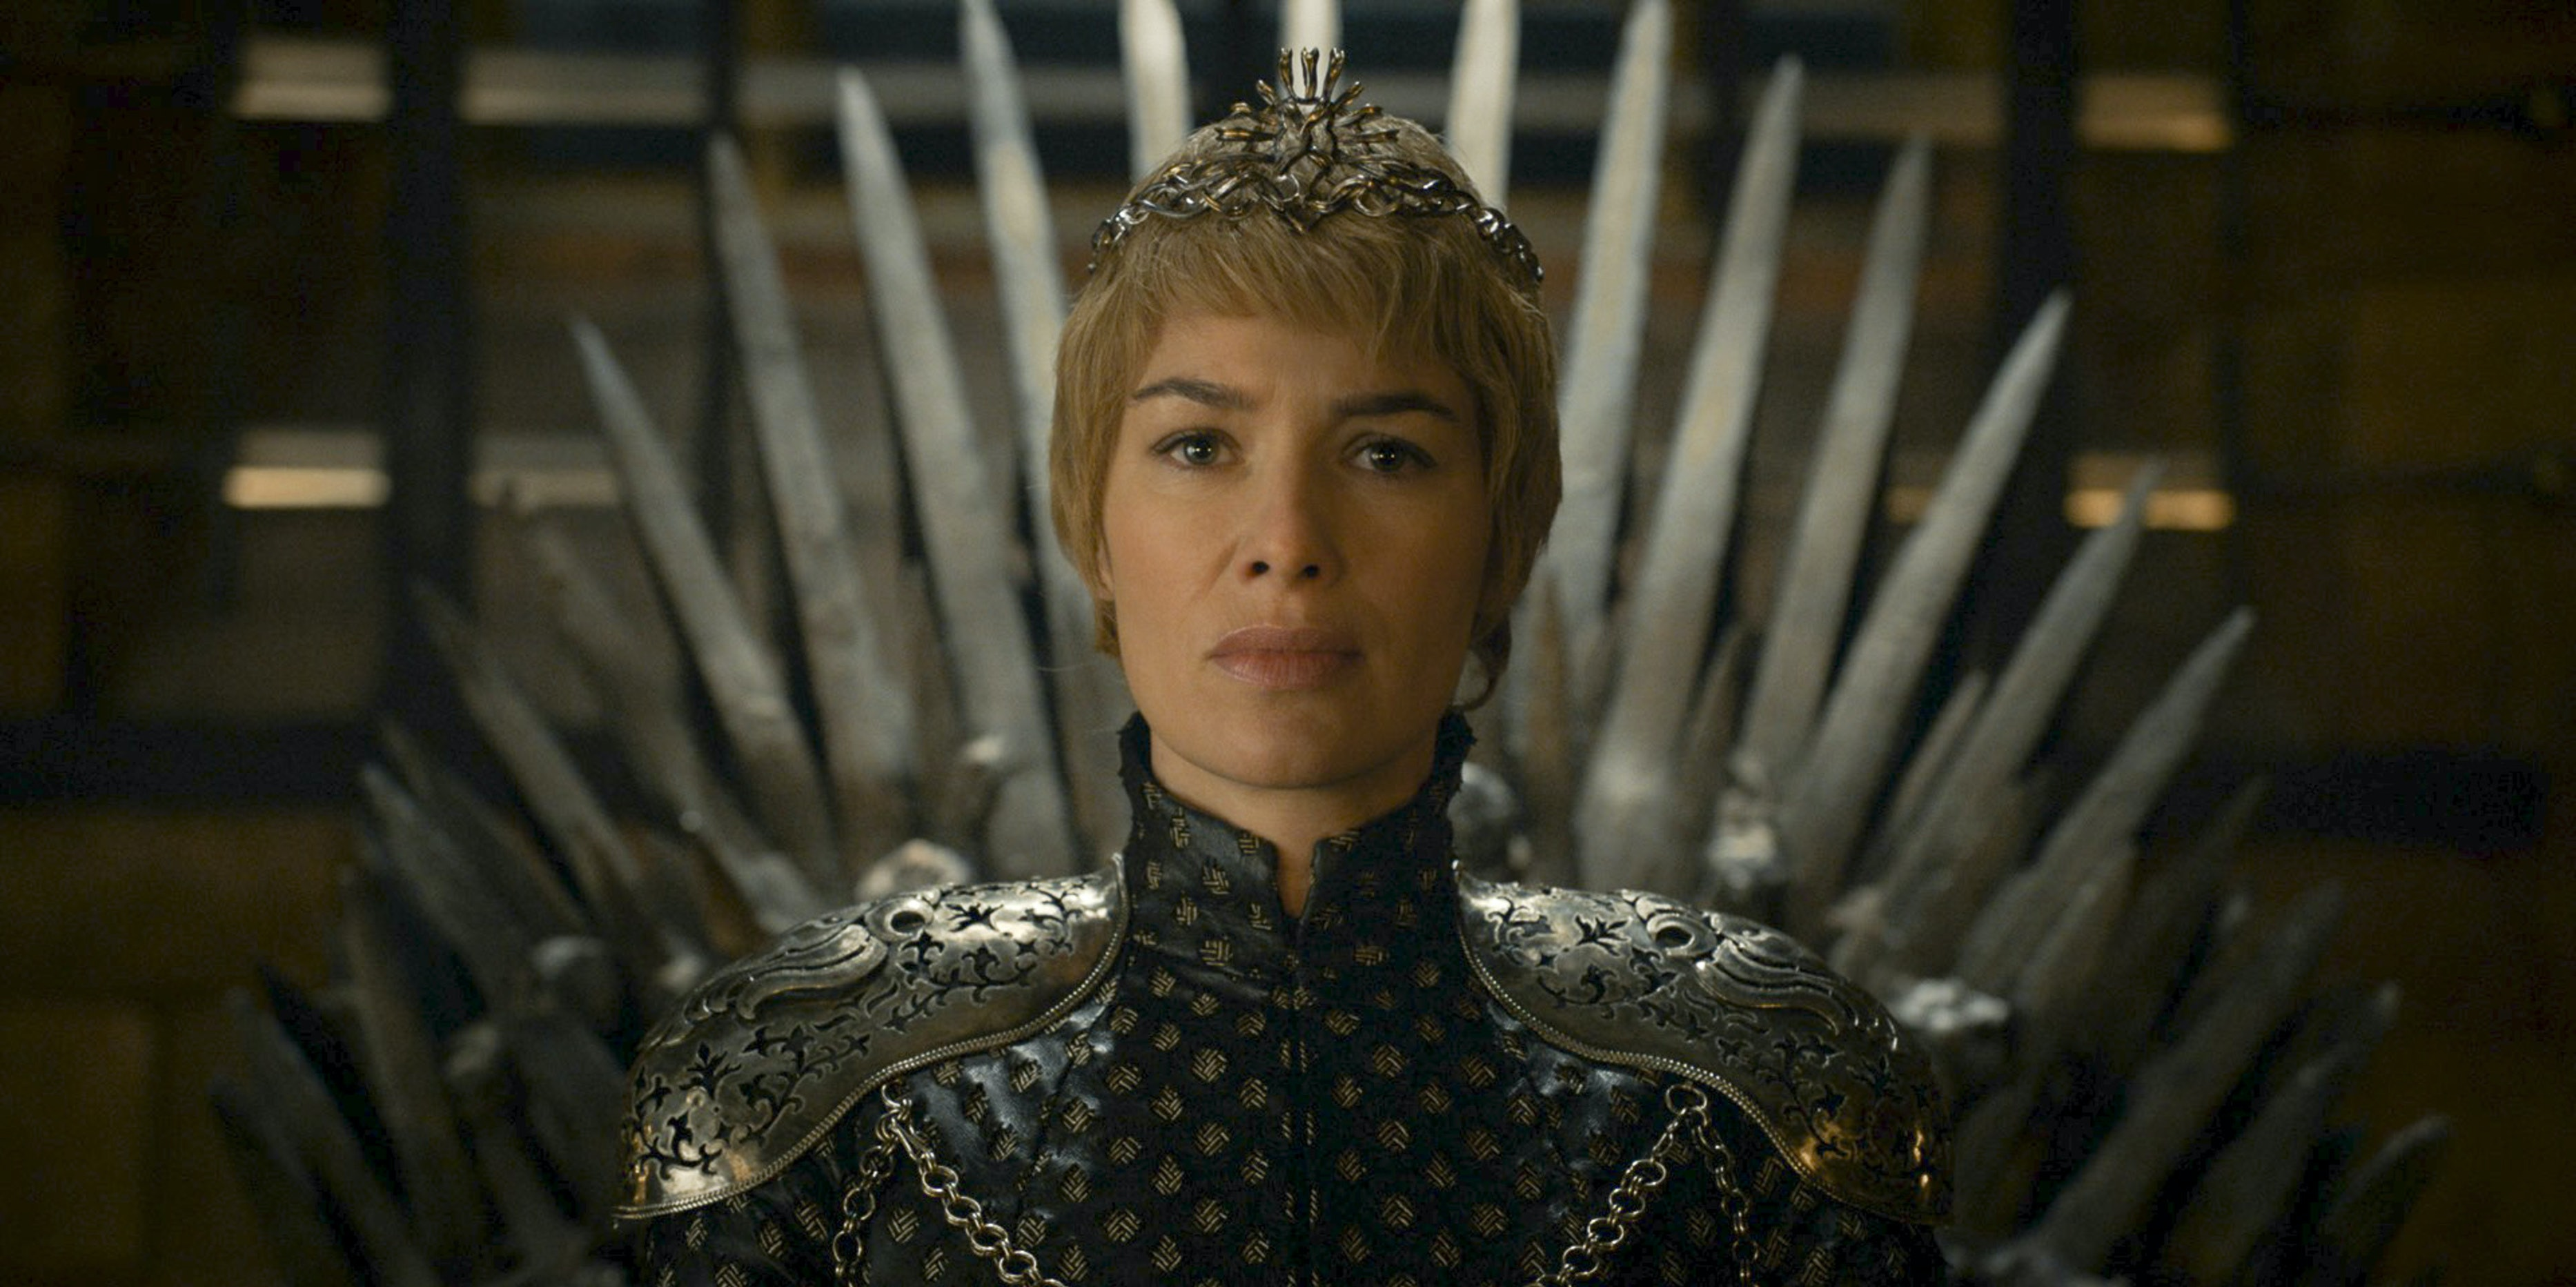 Why Cersei Will Make a Better Ruler Than Jon or Daenerys